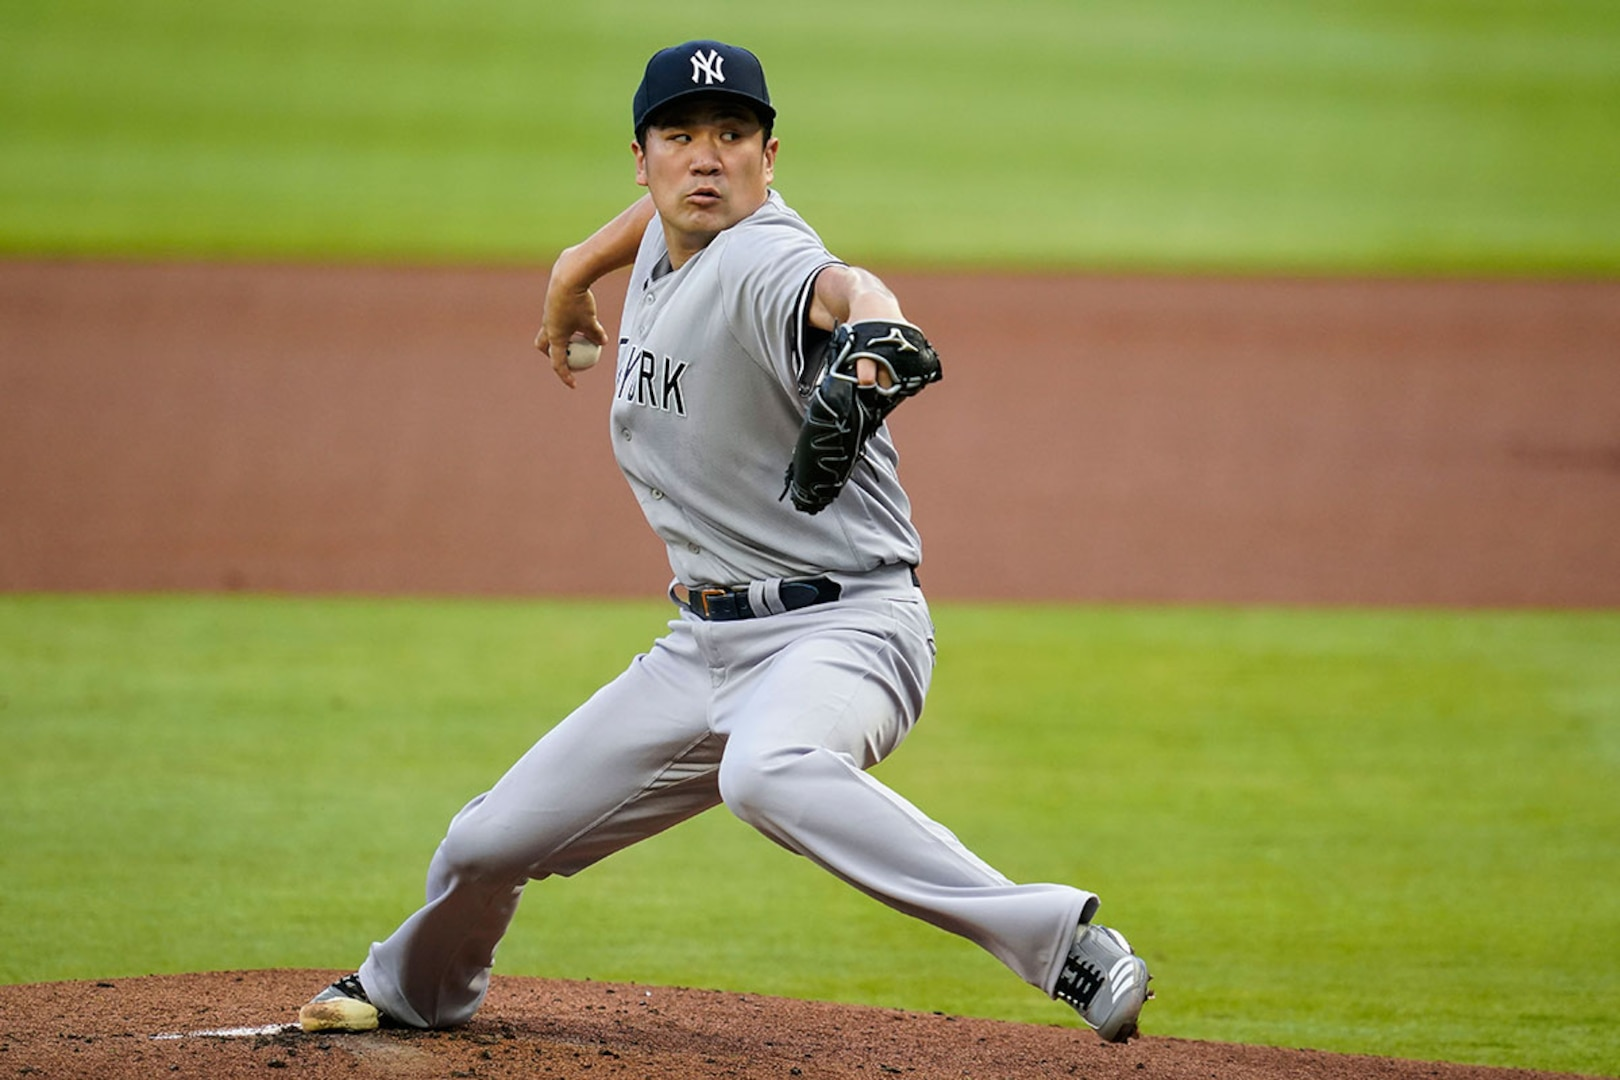 Masahiro Tanaka delivers a pitch while playing for the New York Yankees